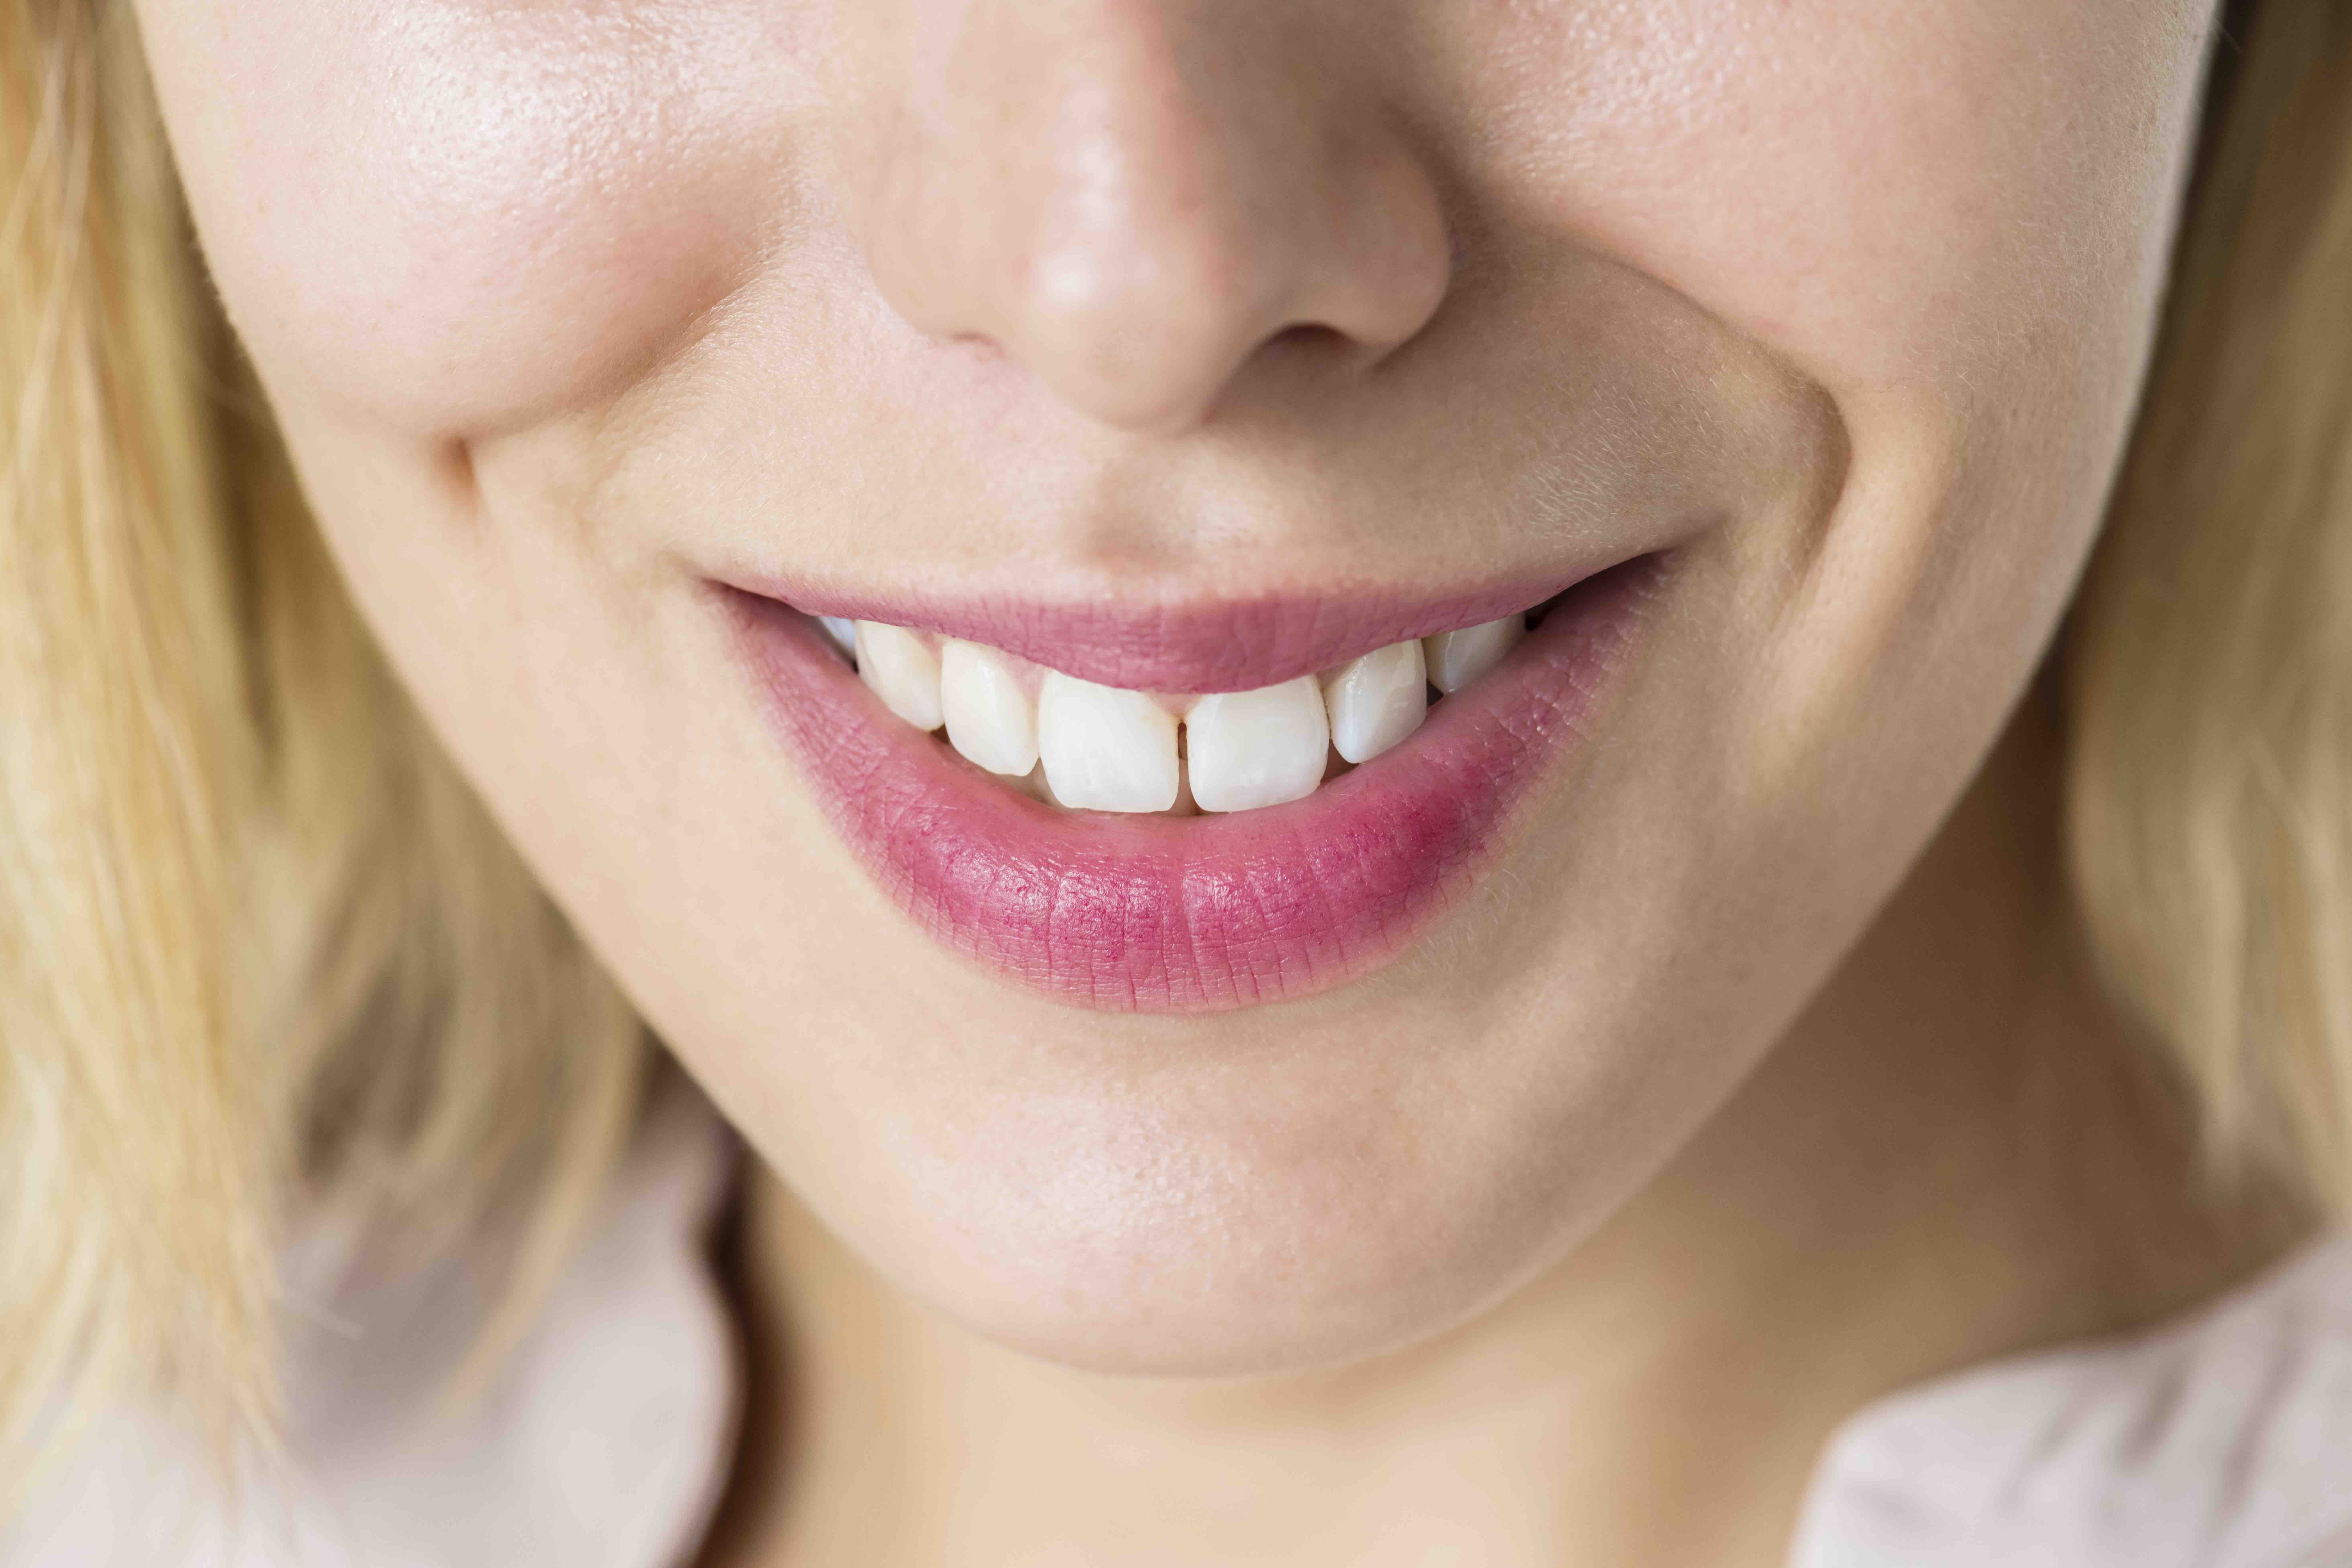 Close up of smiling woman with bridges or dental implants.